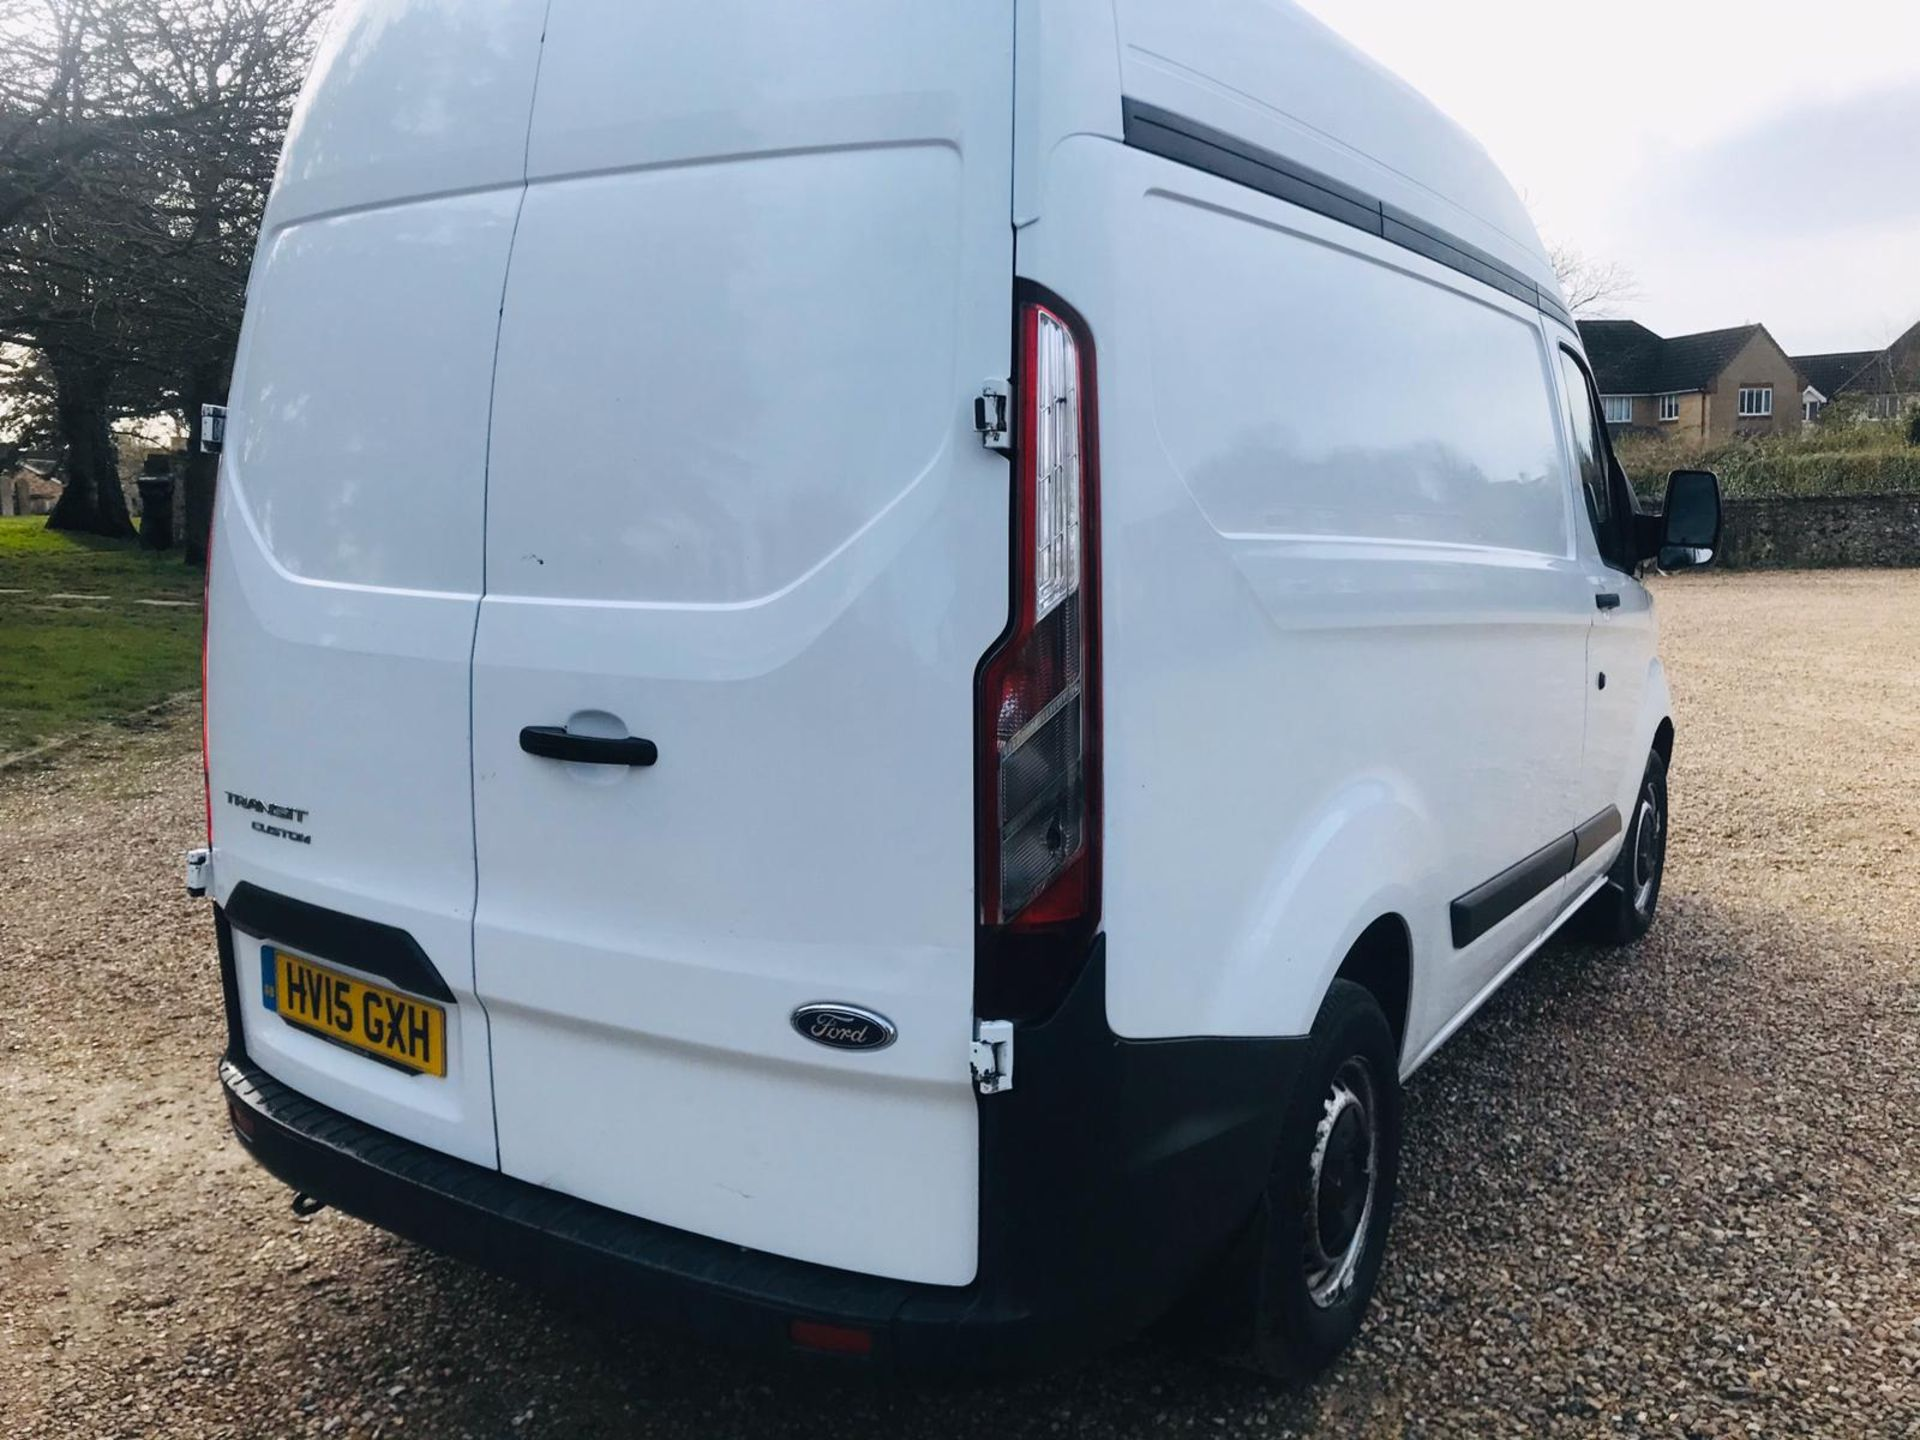 Lot 39 - Ford Transit Custom 2.2 TDCI **HIGH ROOF** 2015 15 Reg - SAVE 20% NO VAT